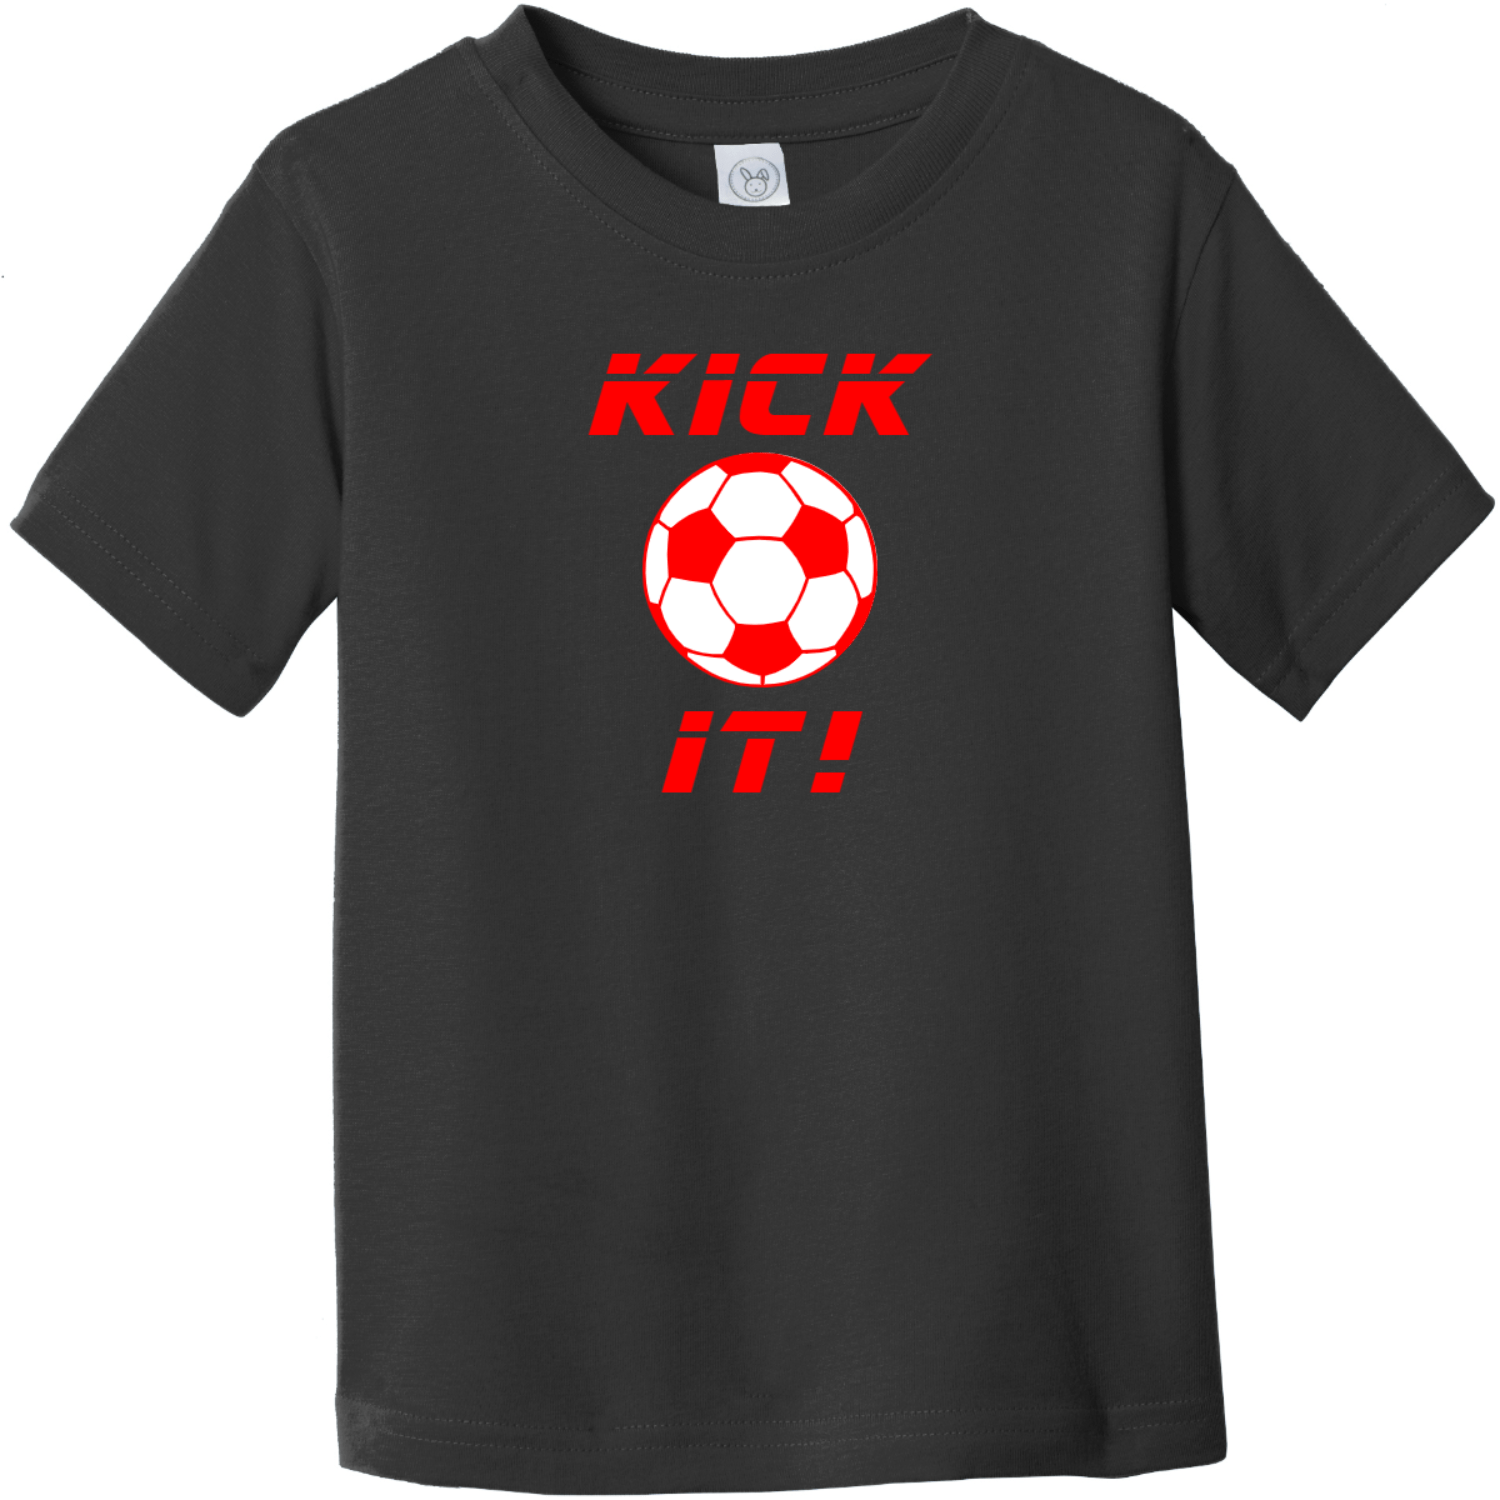 Kick It Soccer Toddler T-Shirt Black Rabbit Skins Toddler Fine Jersey Tee RS3321